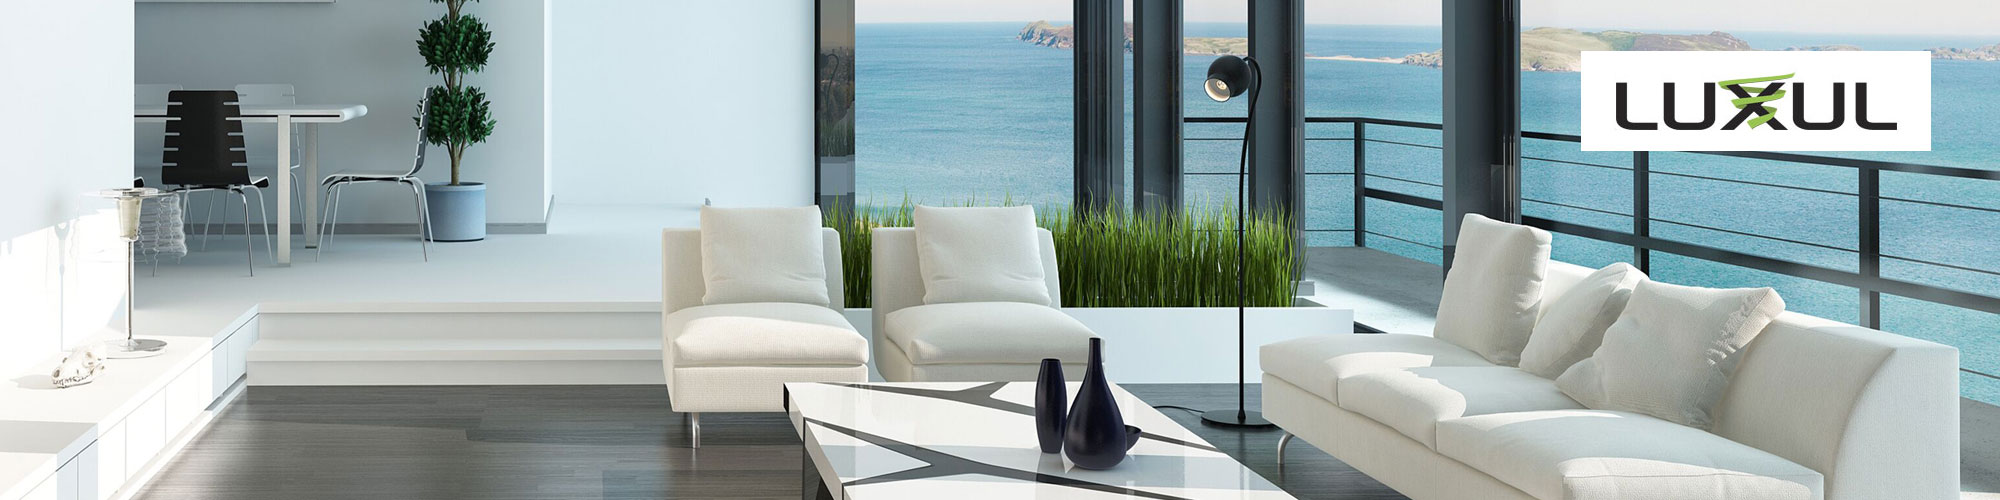 Luxul - AV emea | Working for you on home design styles, cable design, new pc design, home wireless design, outside plant design, camera design, home audio design, home theater media center pc, router design, house design, home lan design, home electrical wiring diagrams,